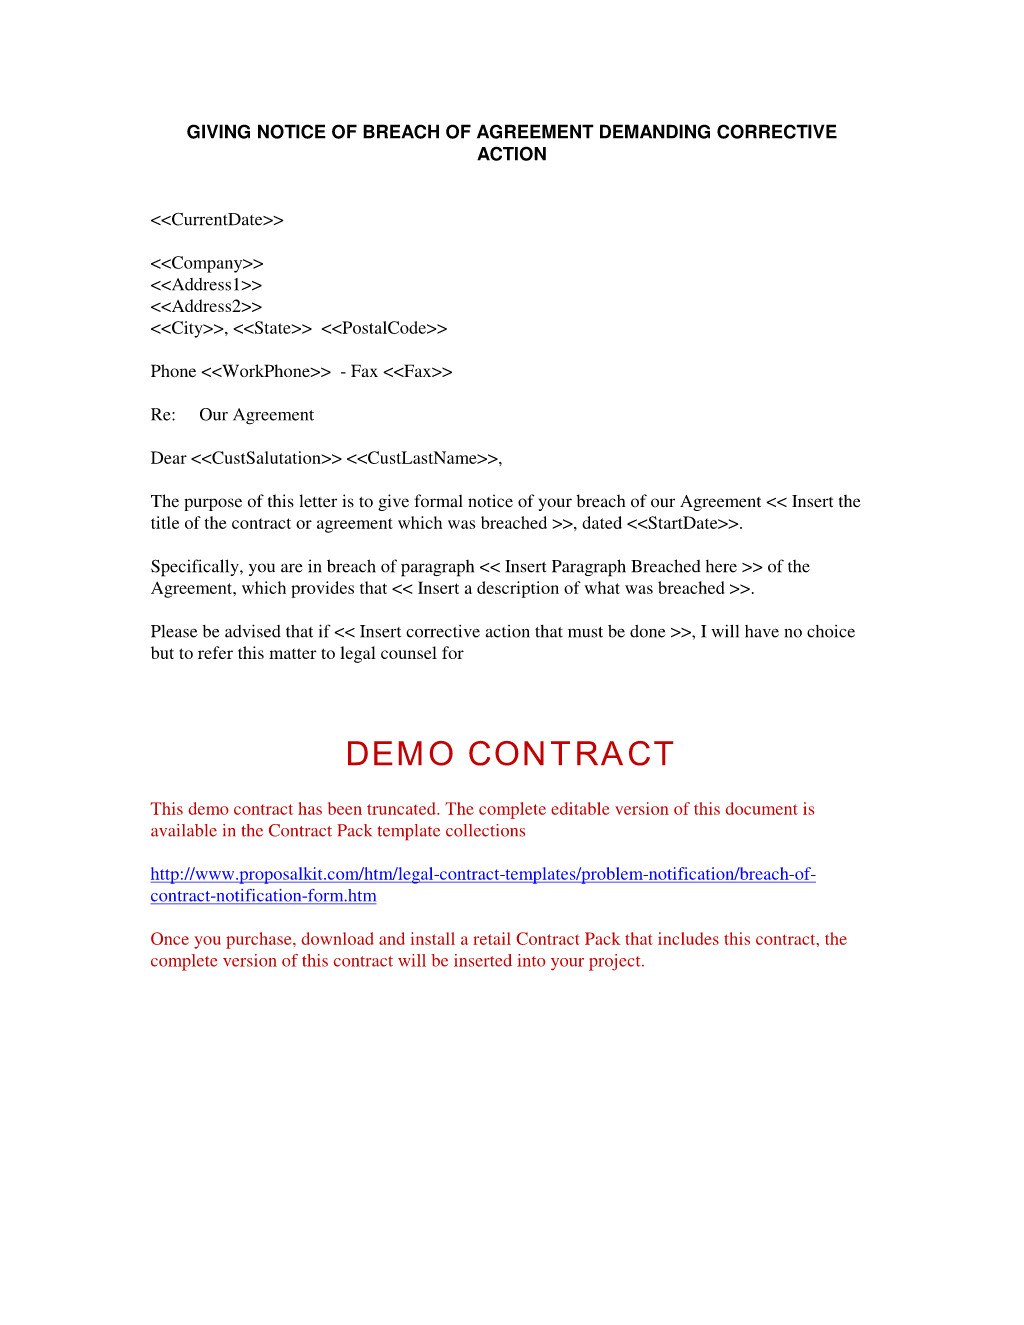 Letter before Action Template Breach Of Contract Breach Of Contract Notification form Notification Of